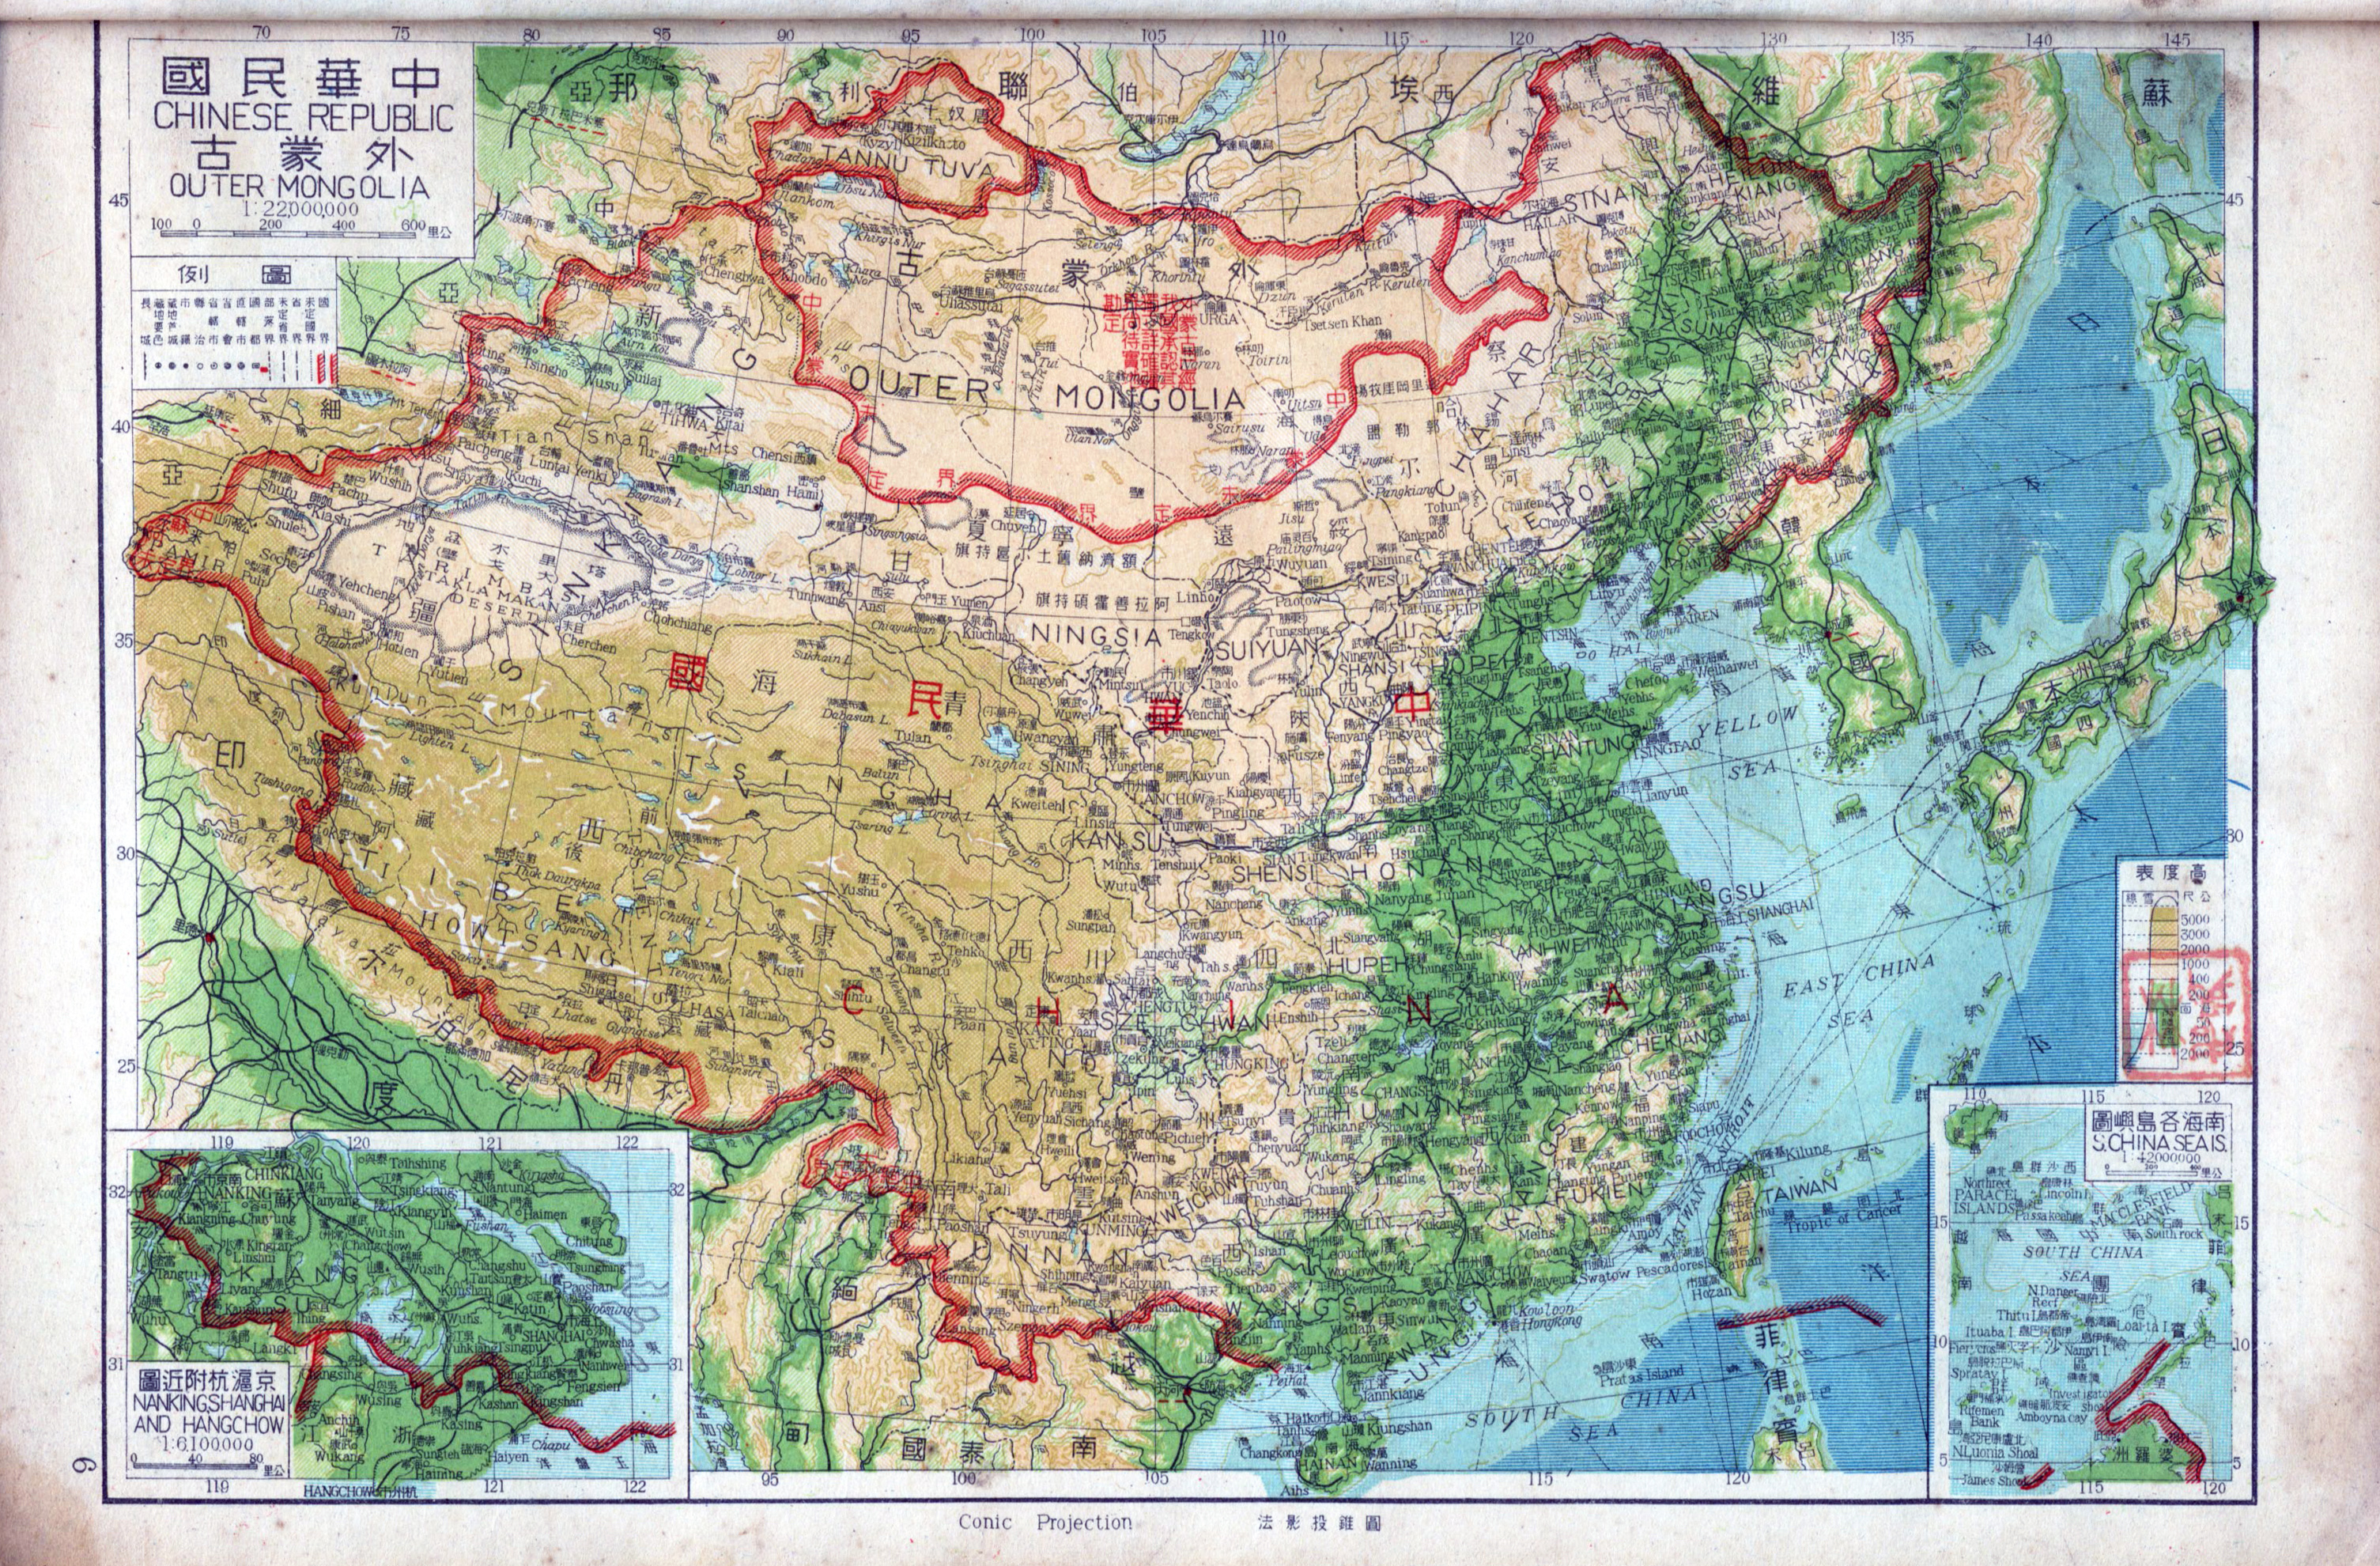 Topographic Map Asia.Large Topographical Map Of China In English And Chinese China